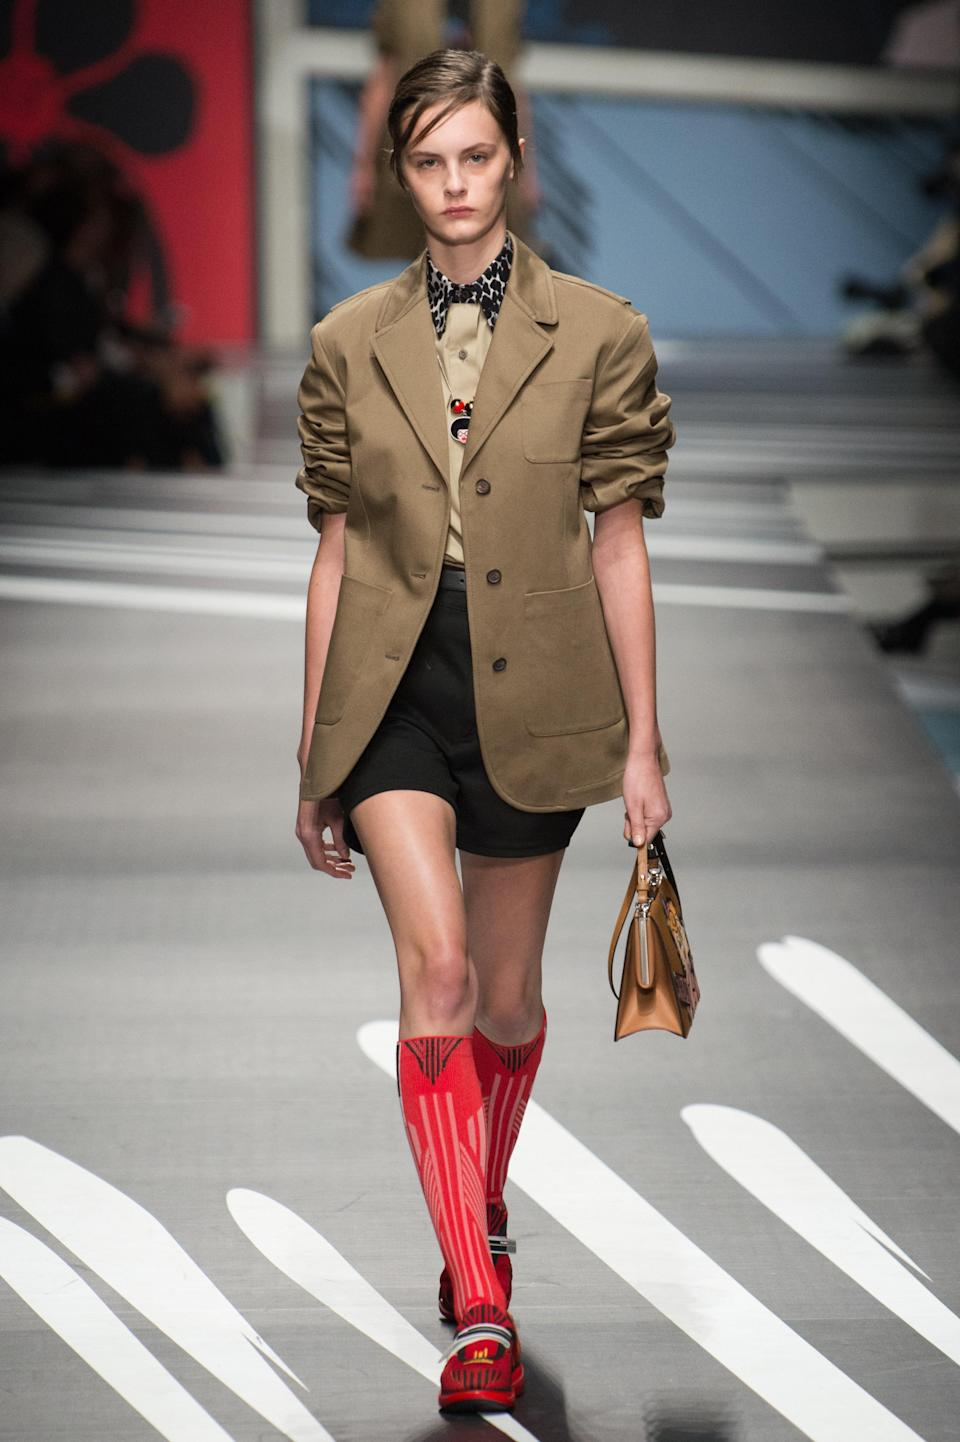 <p><i>Model wears a tan blazer, black shorts, and red knee-high socks from the SS18 Prada collection. (Photo: ImaxTree) </i></p>